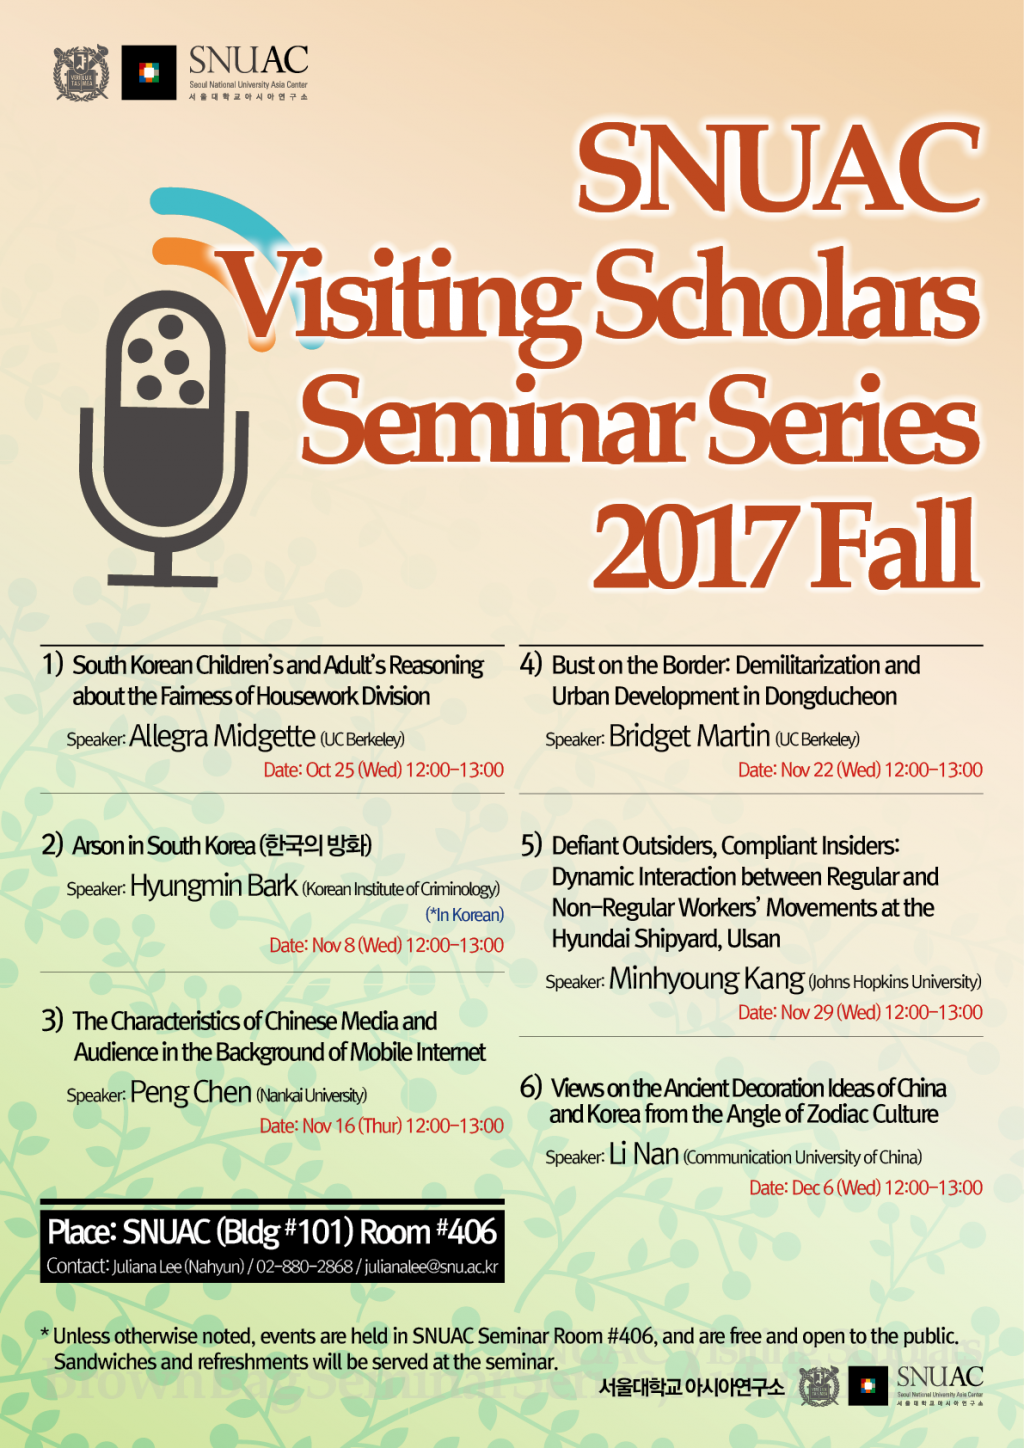 2017 FALL SNUAC Visiting Scholars Seminar Series